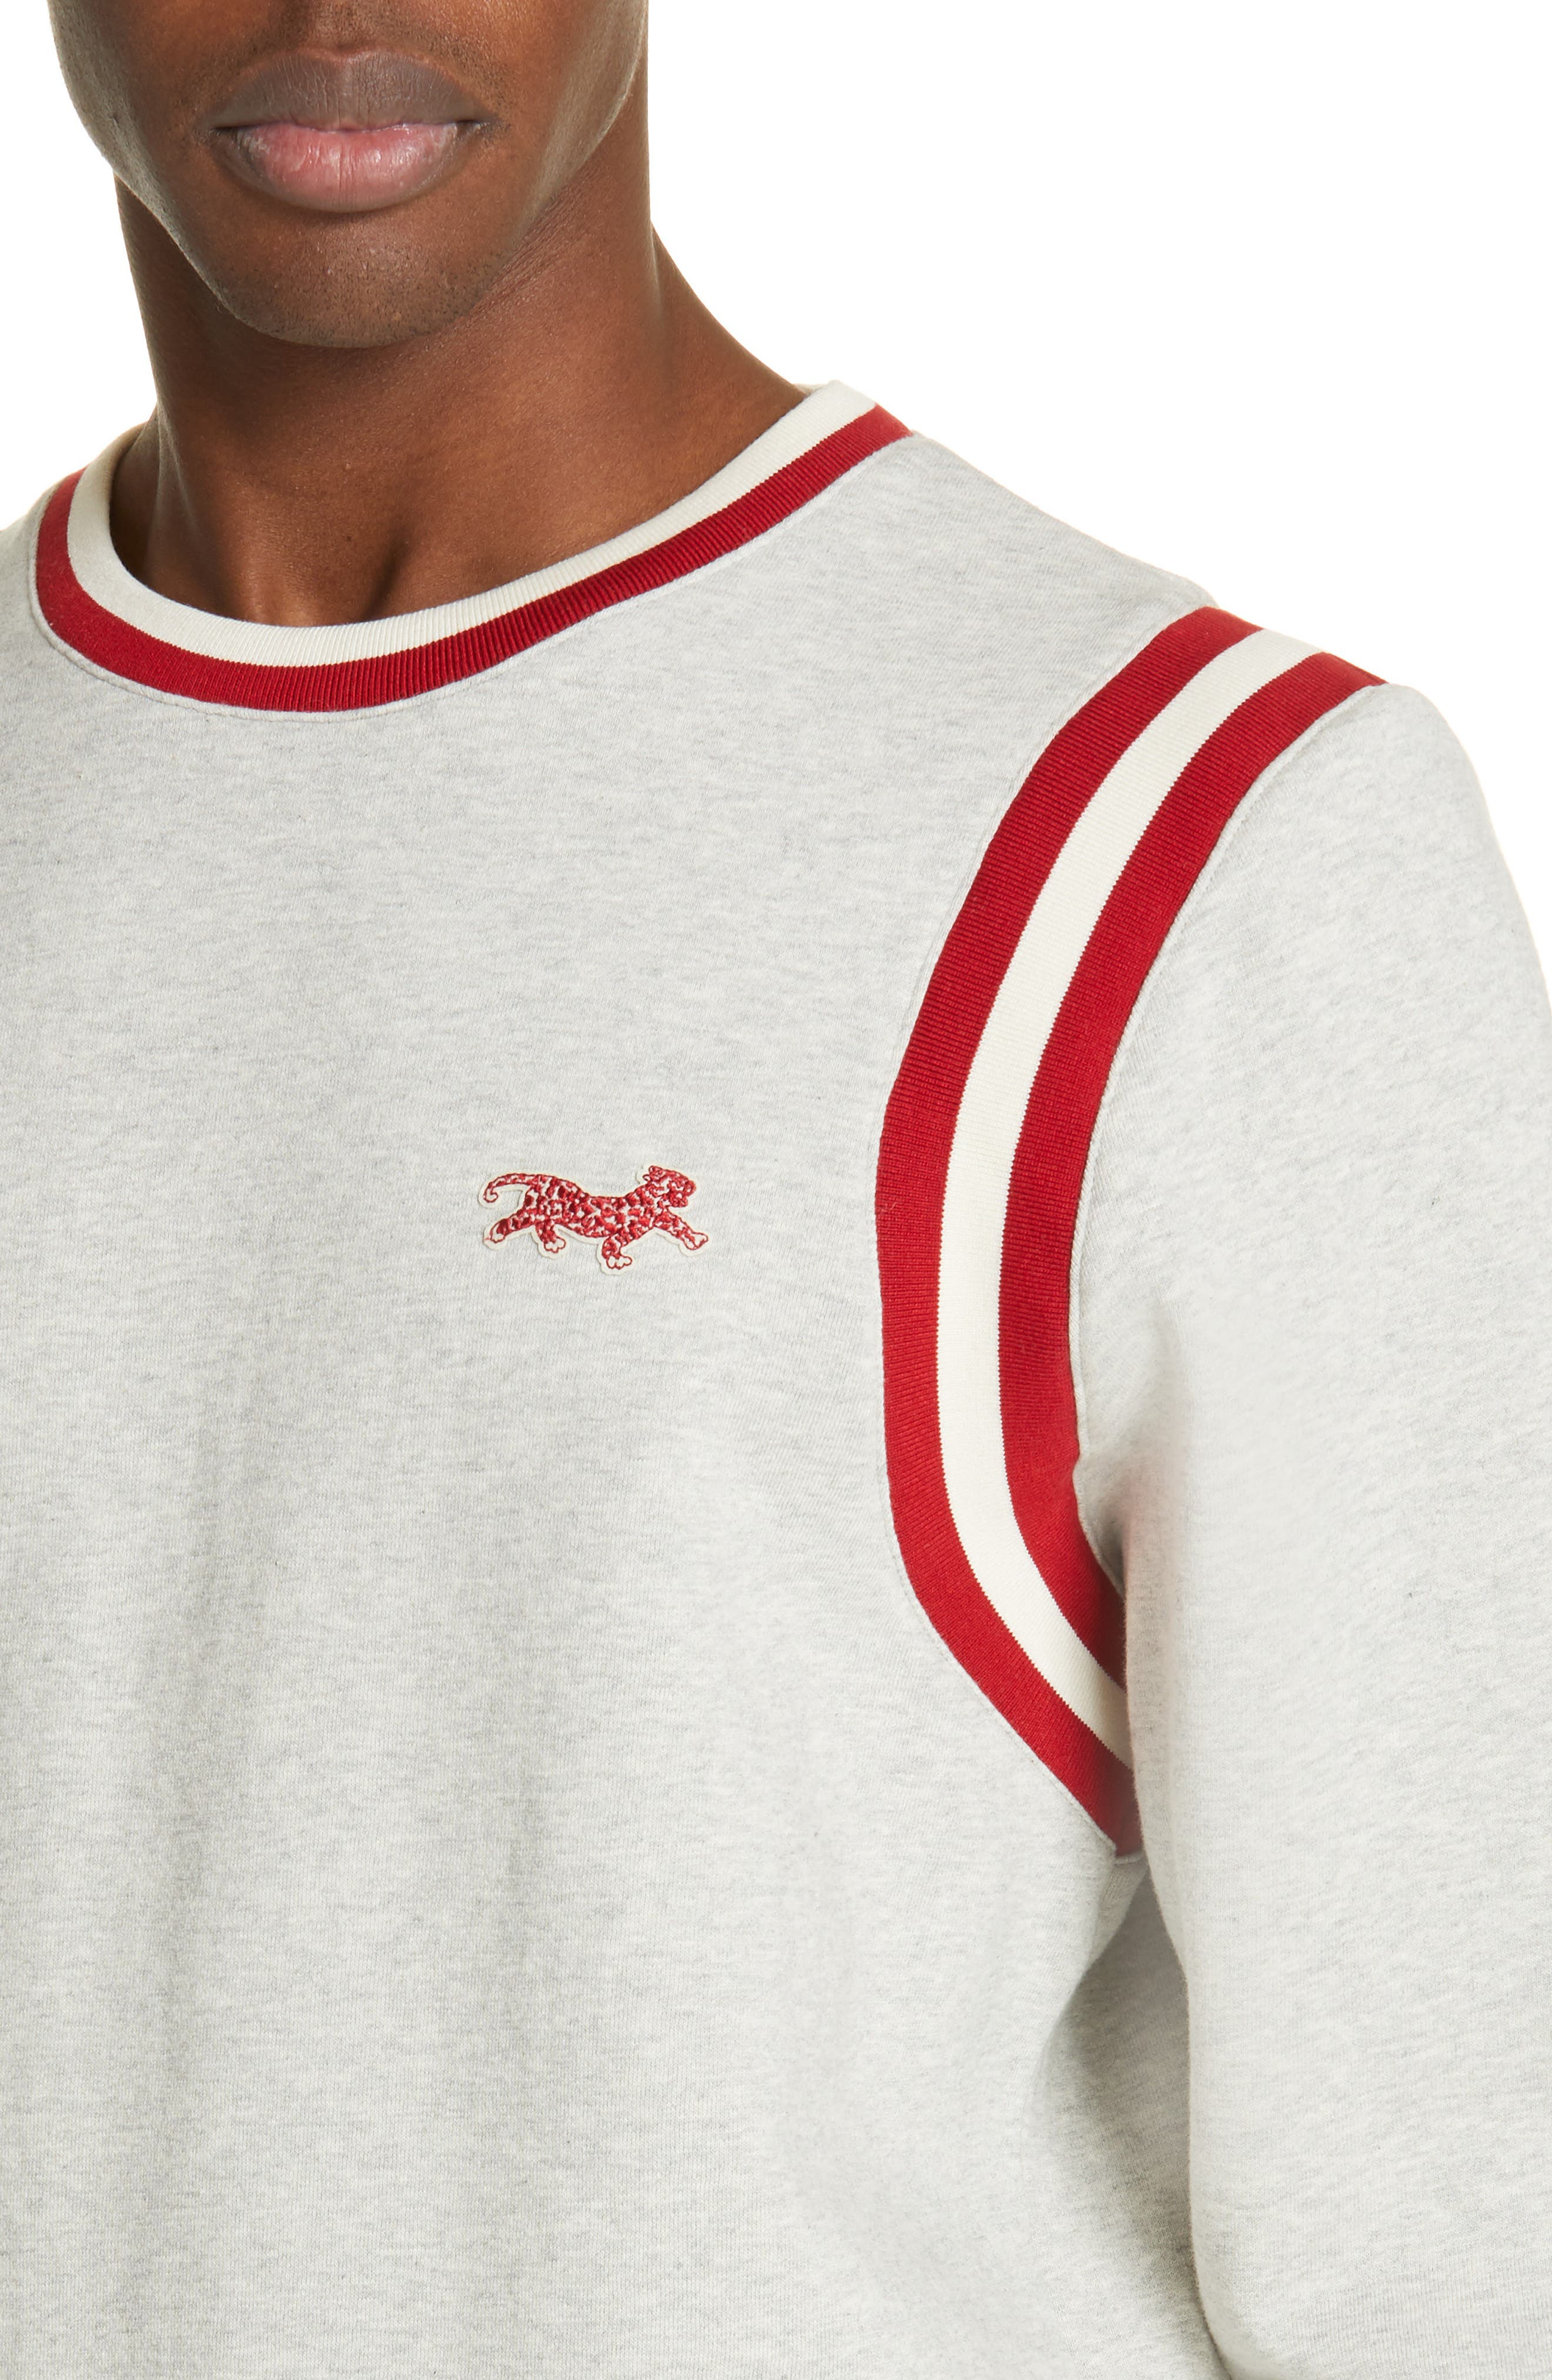 OVADIA & SONS, Varsity Sweatshirt, Alternate thumbnail 4, color, HEATHER GREY/RED